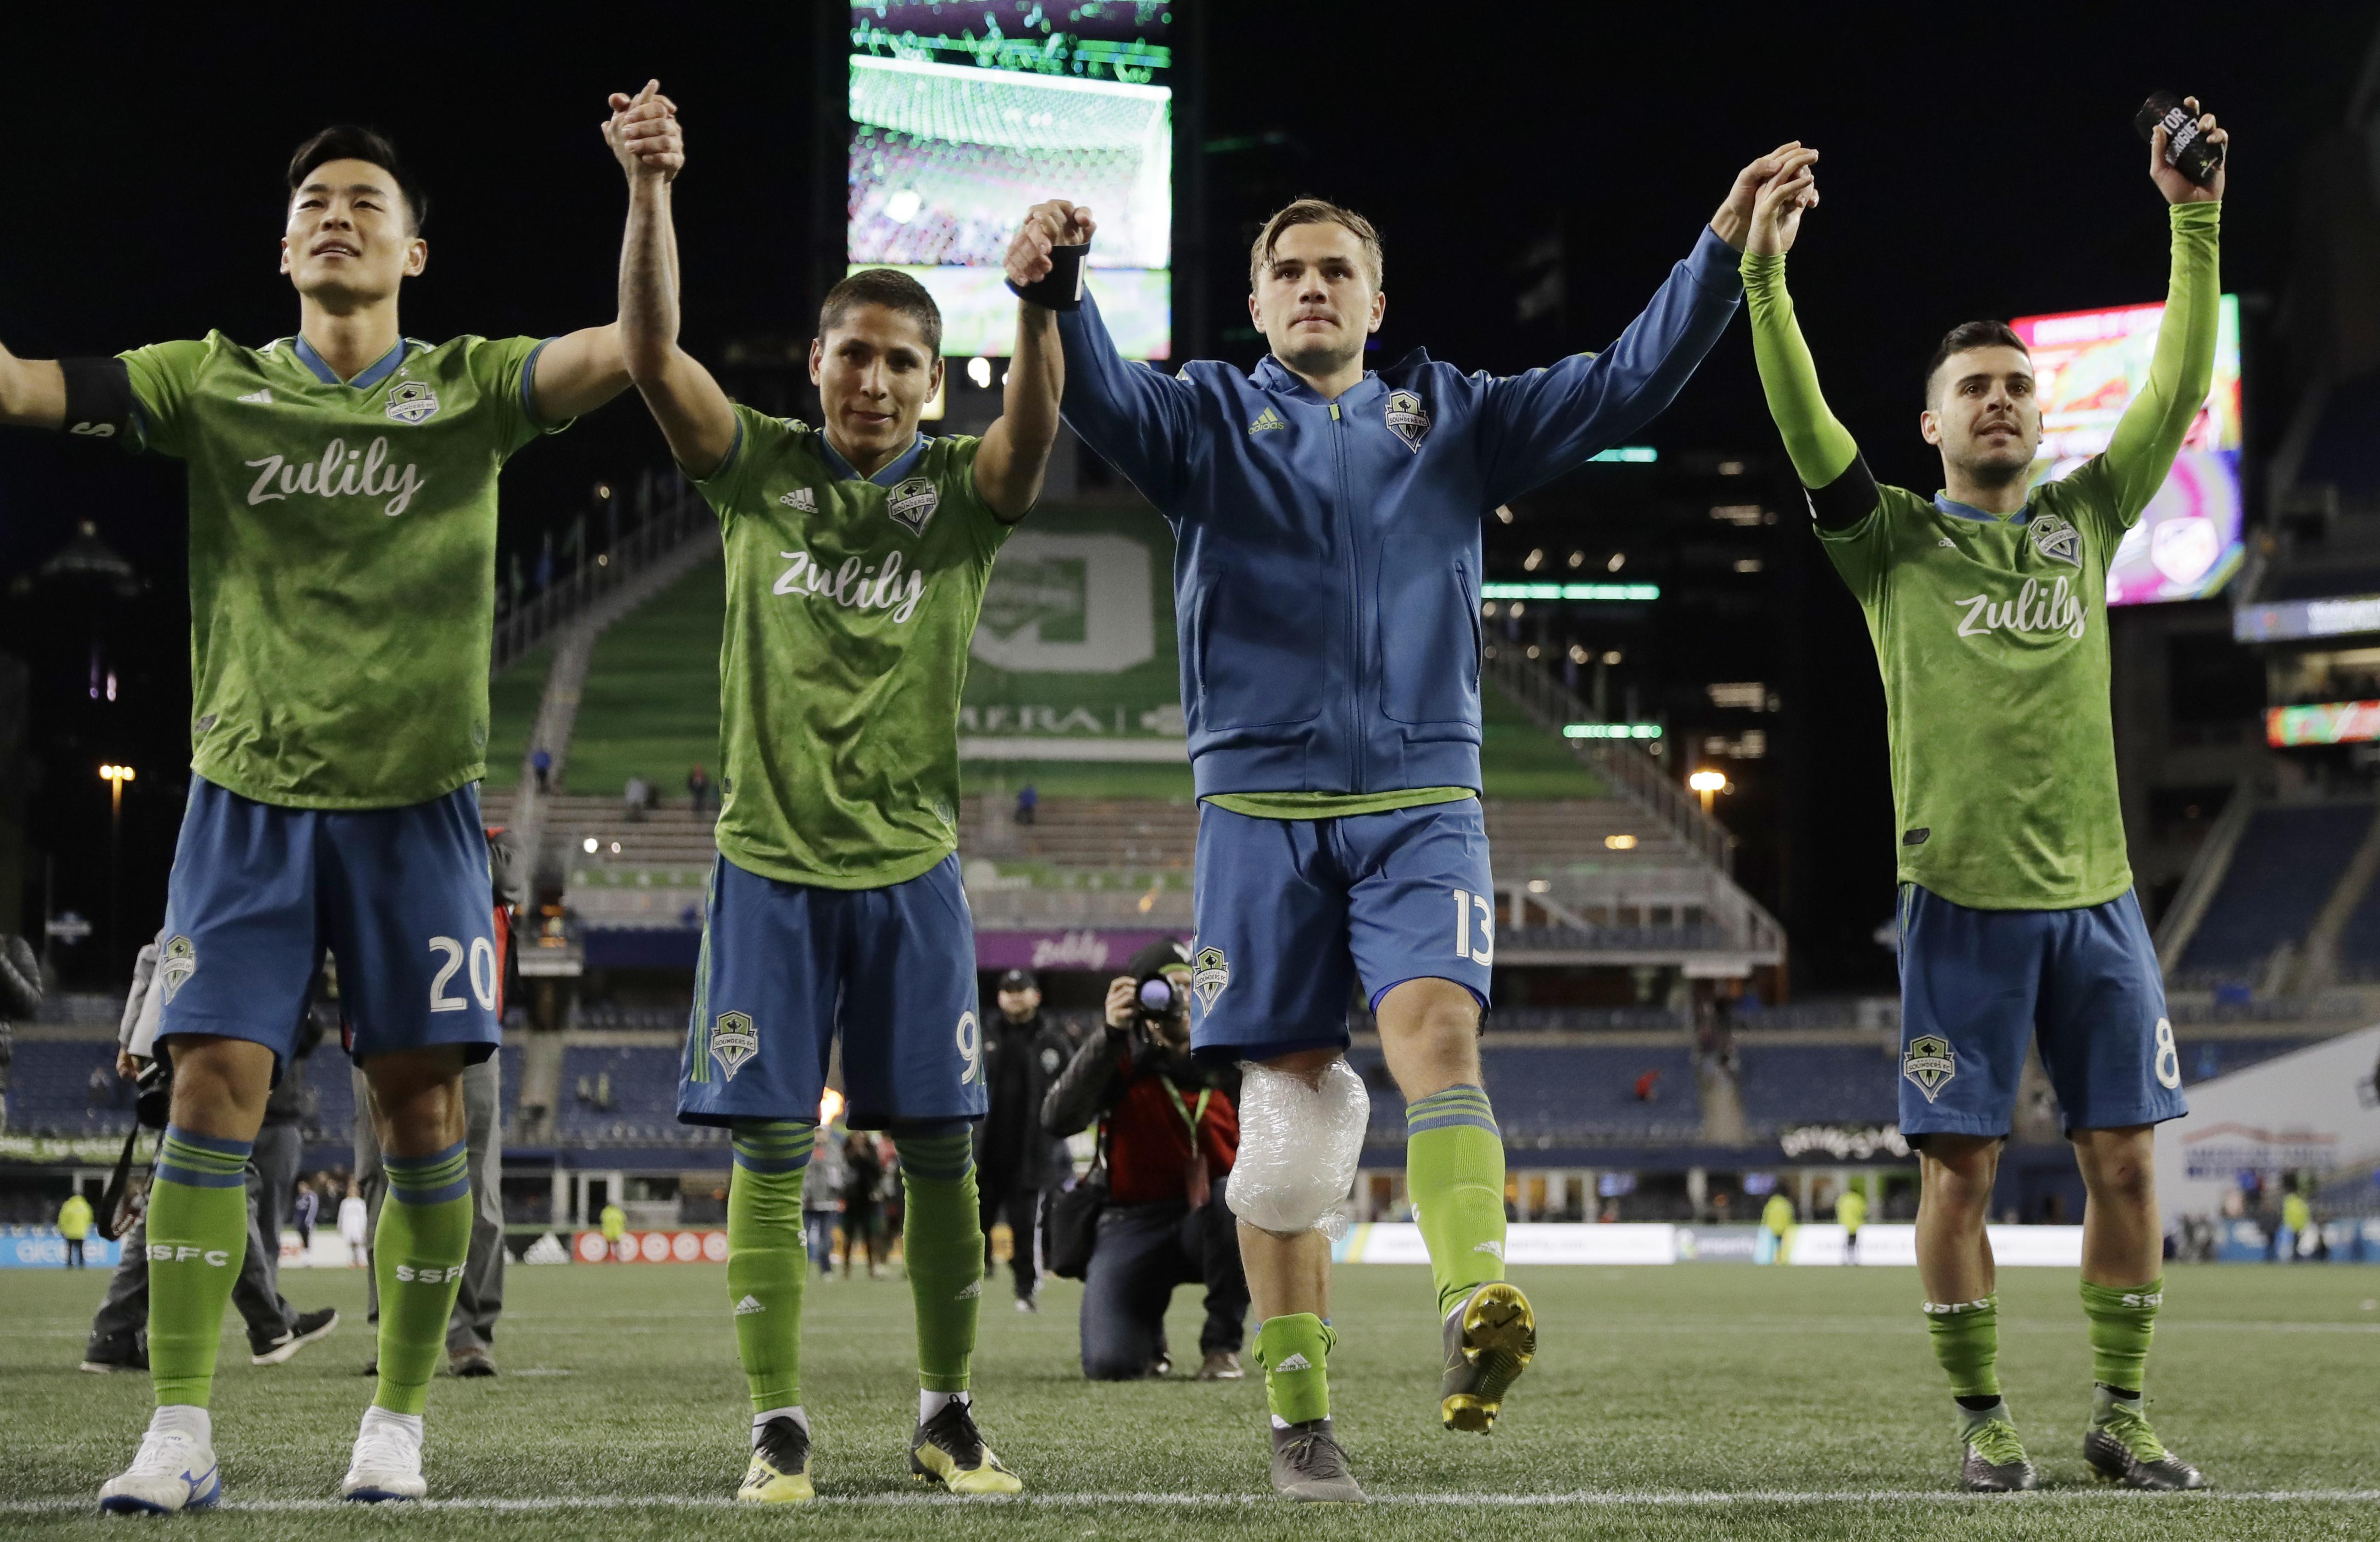 half off fb053 6bc52 Seattle Sounders win 3rd straight to open season, 4-2 over ...